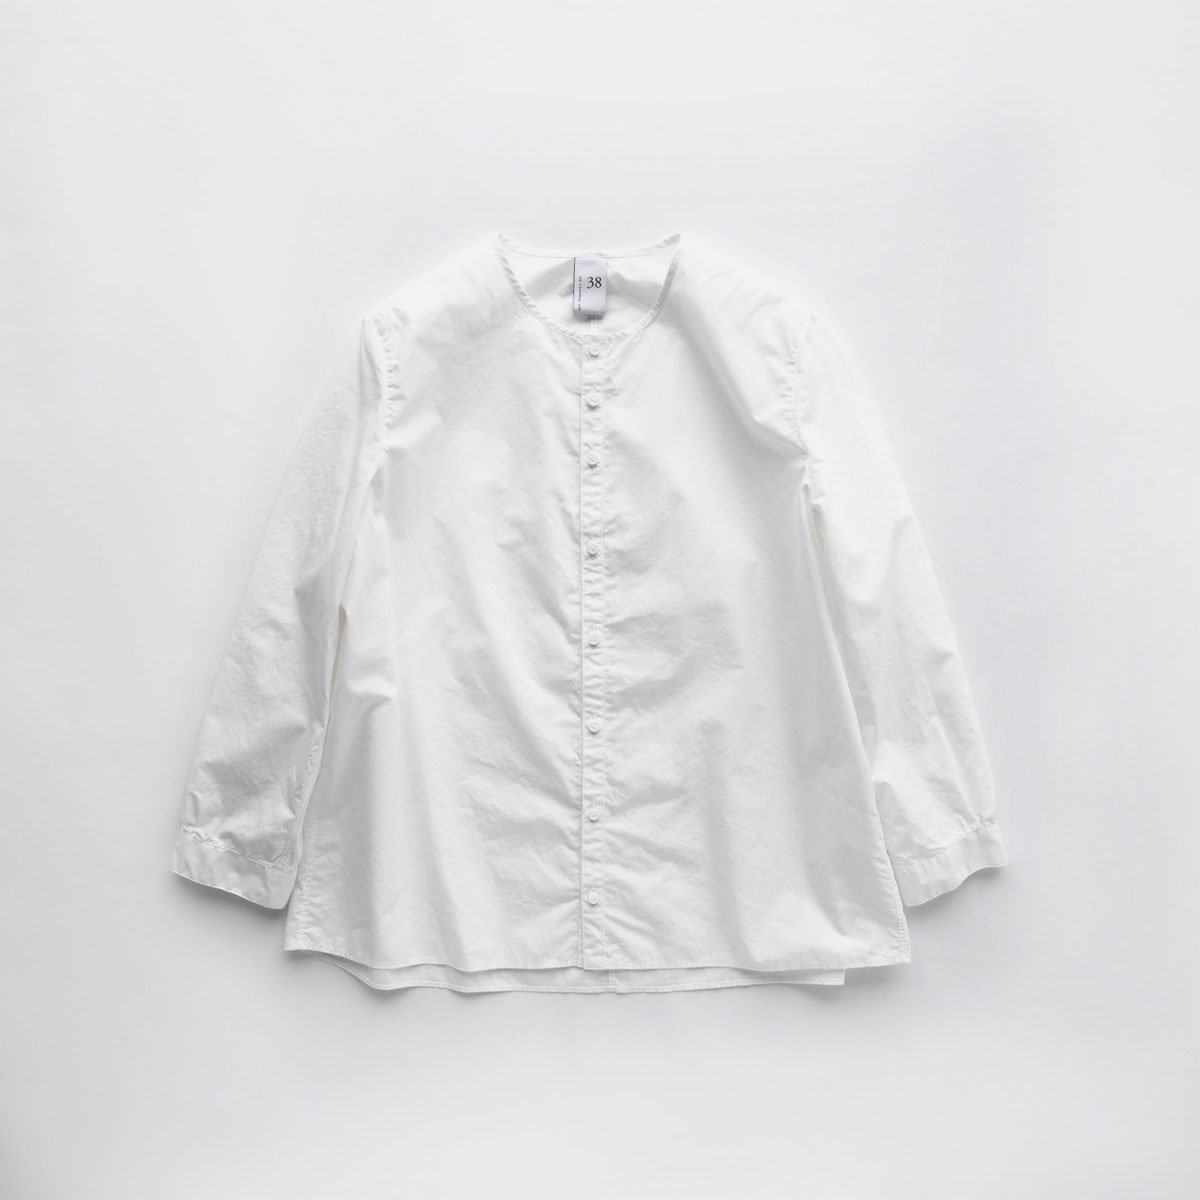 NO CONTROL AIR 60/1 SUPIMA COTTON TYPEWRITER NO COLLAR SHIRT (off white)